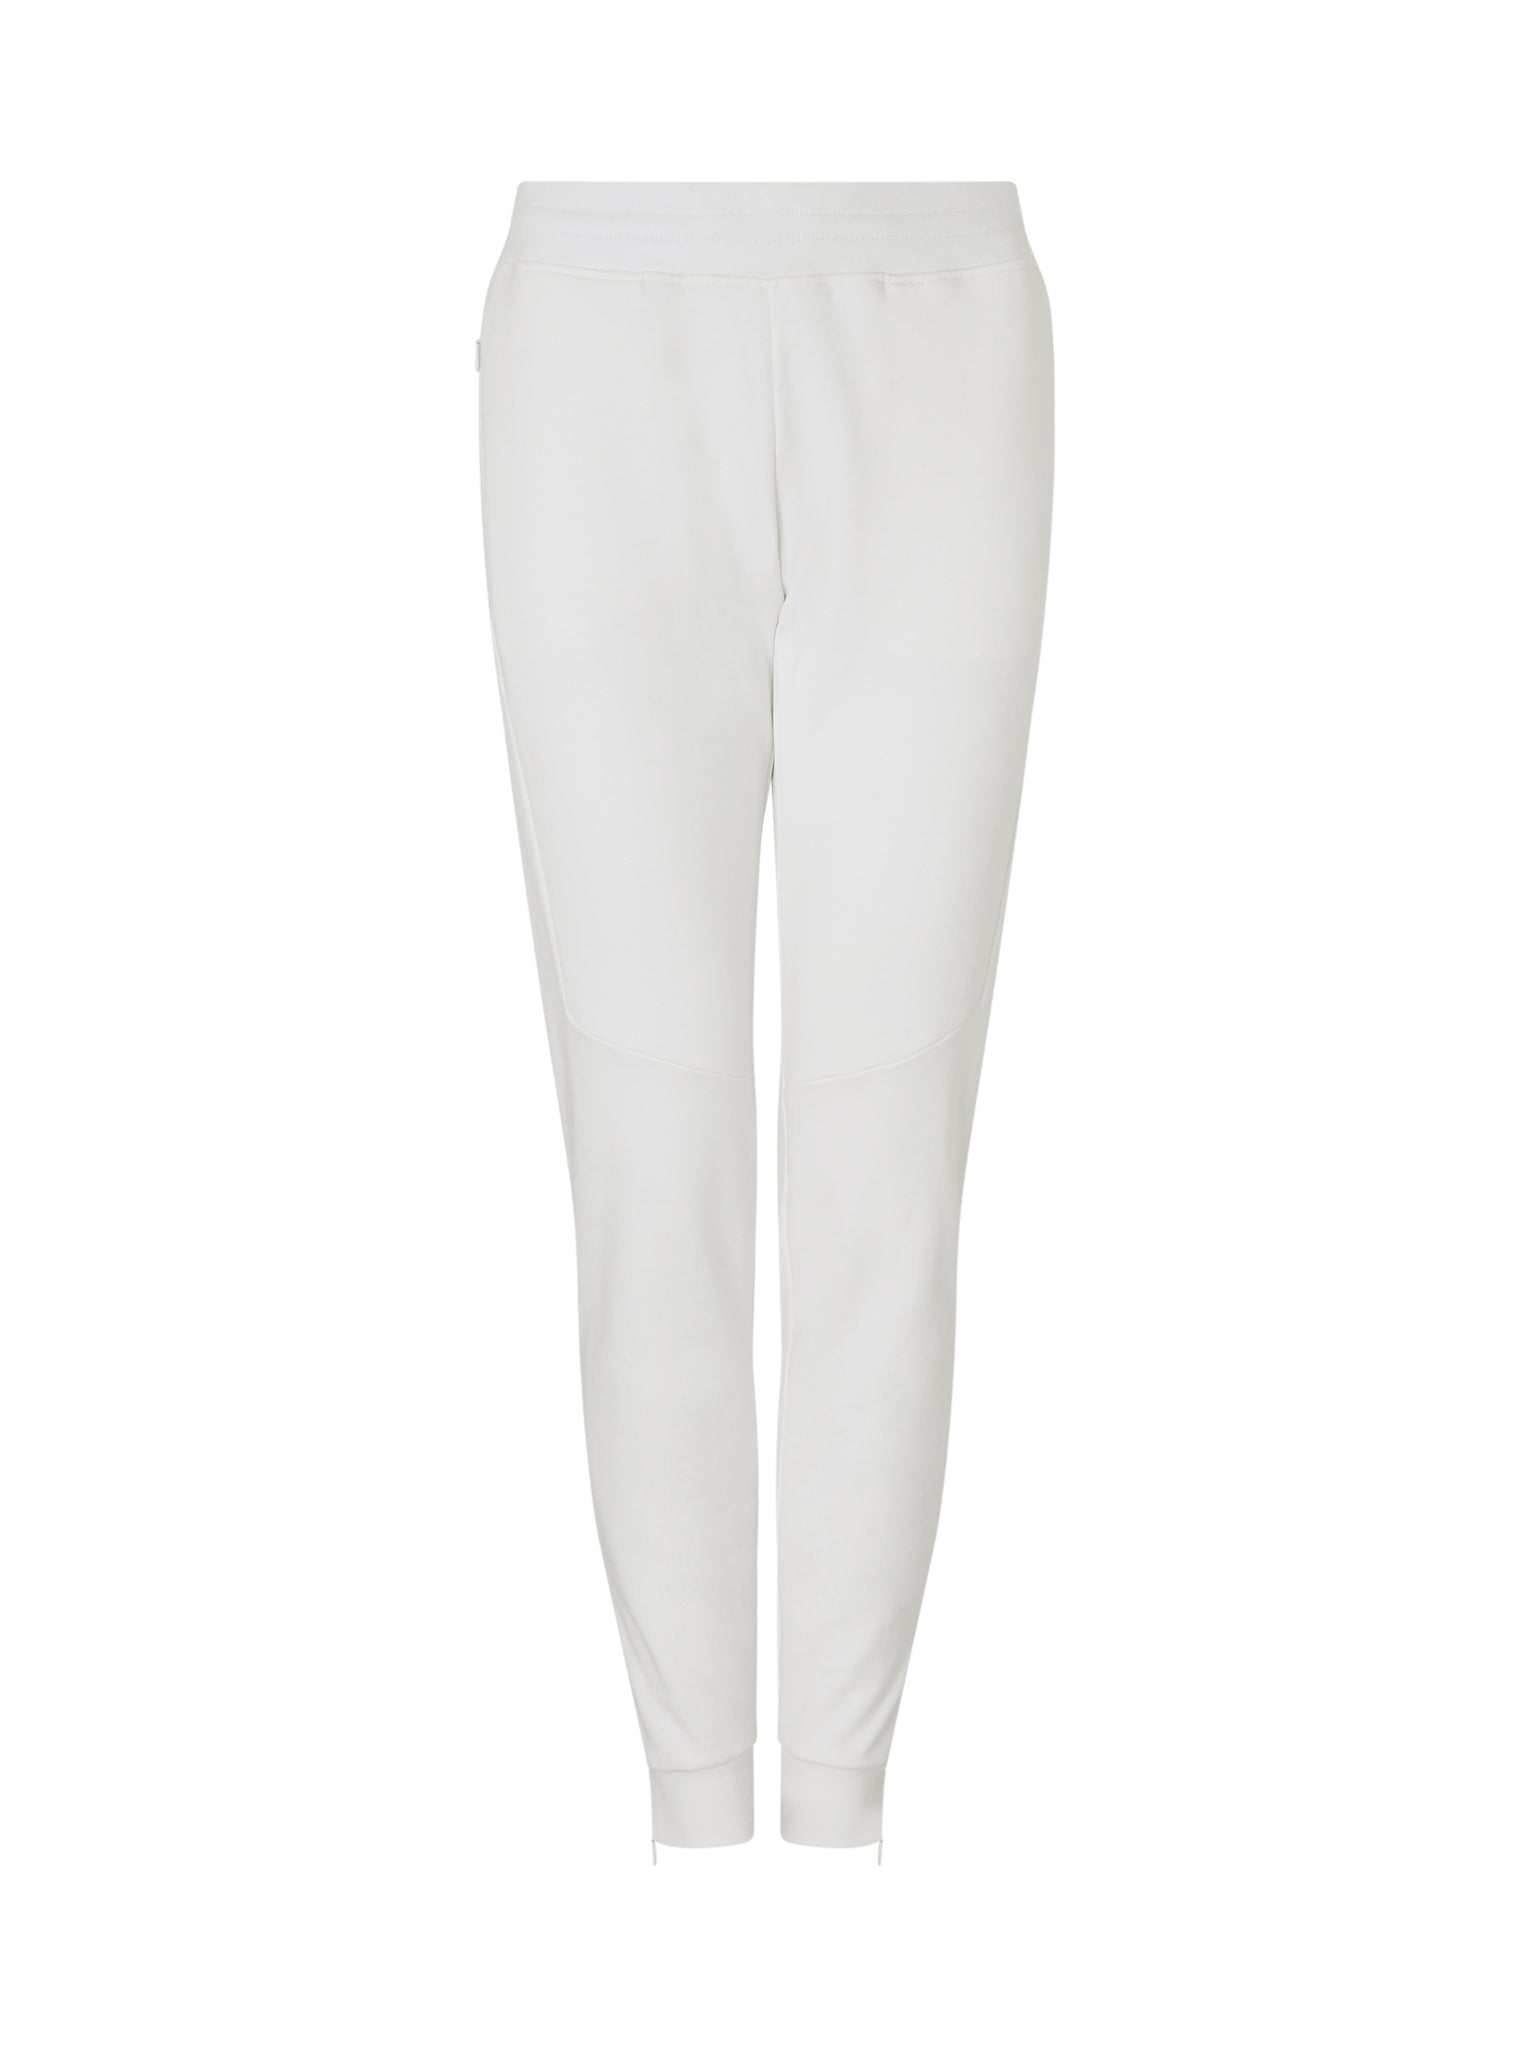 white track pant made from 100% cotton and concealed zip pockets.